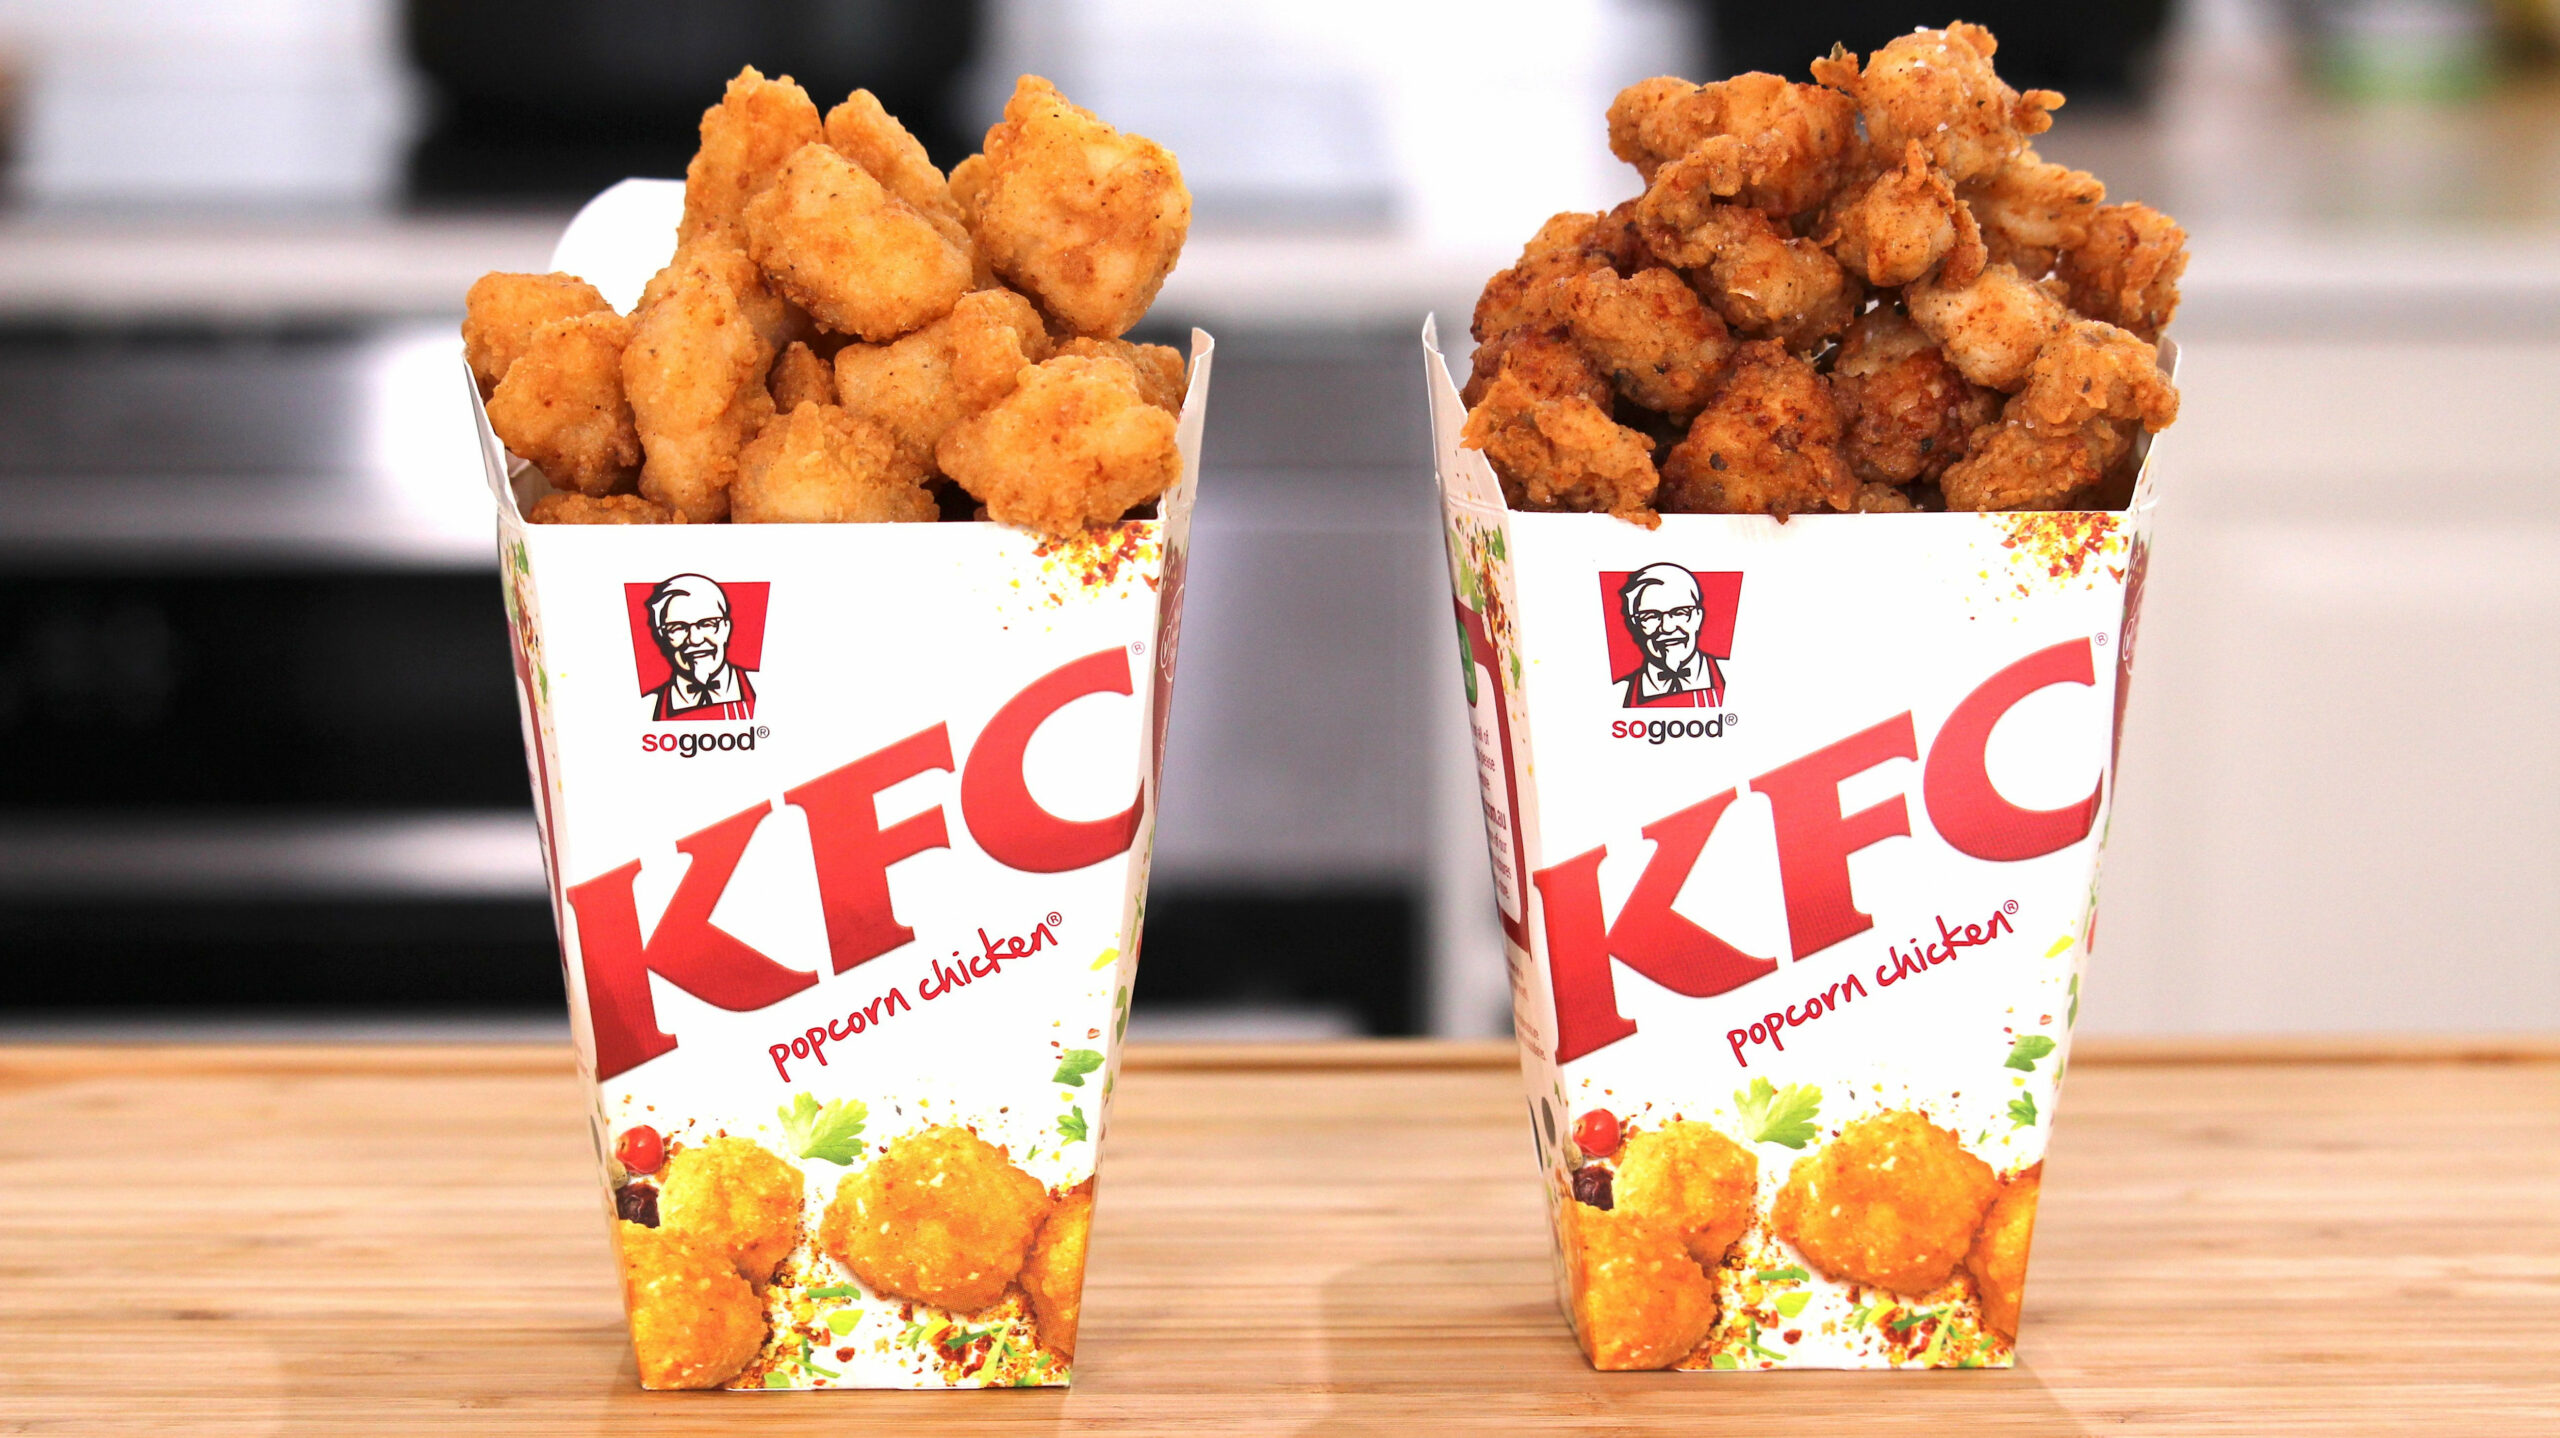 KFC POPCORN CHICKEN RECIPE - DIY just like the real thing ..